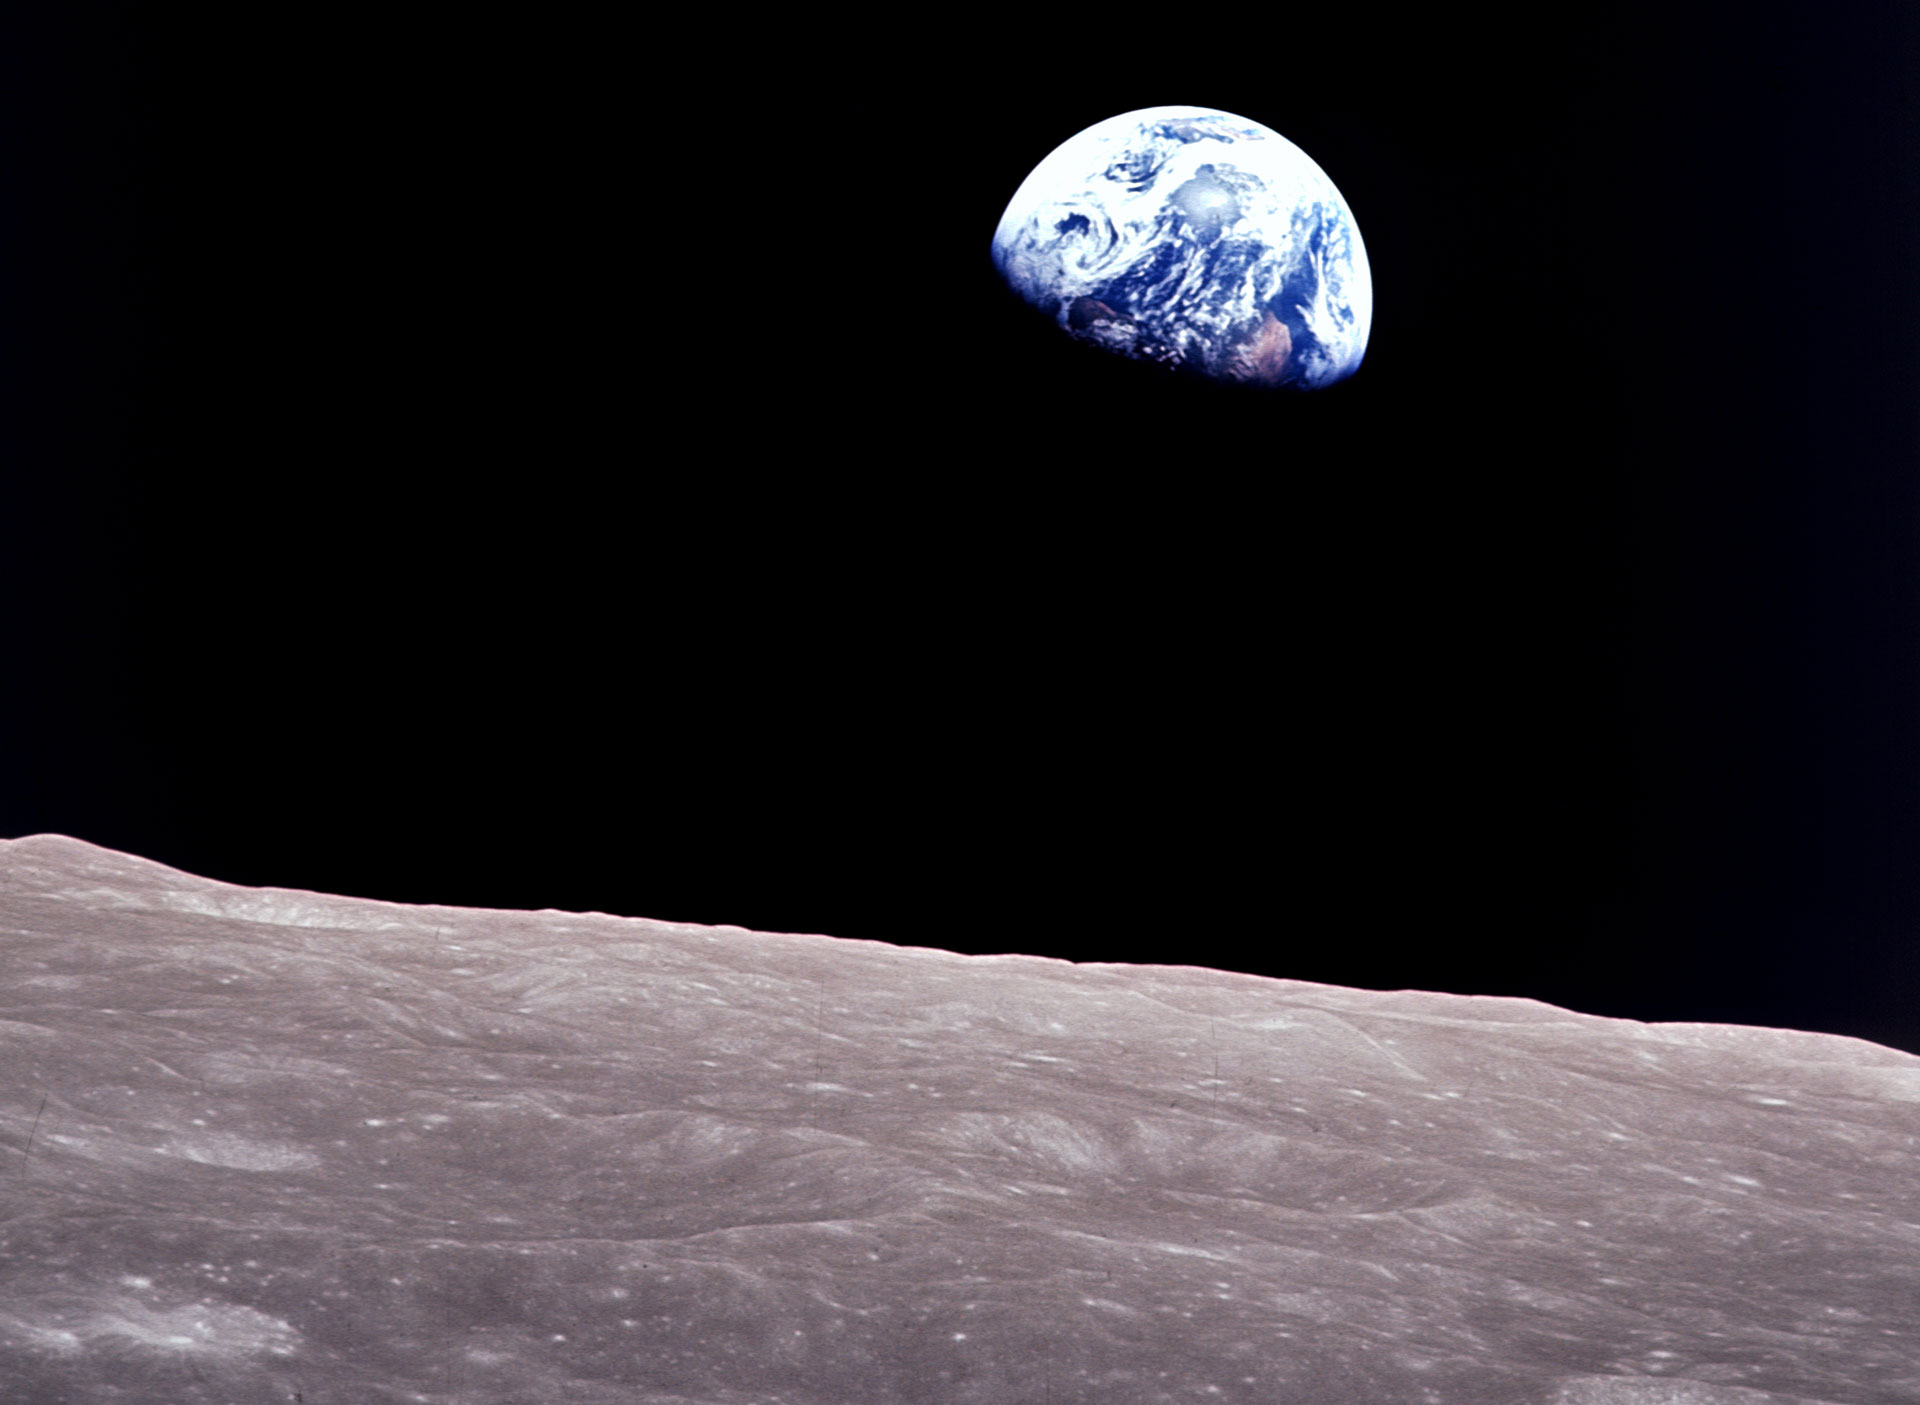 Earthrise at 50: What will be the next image to change the world?